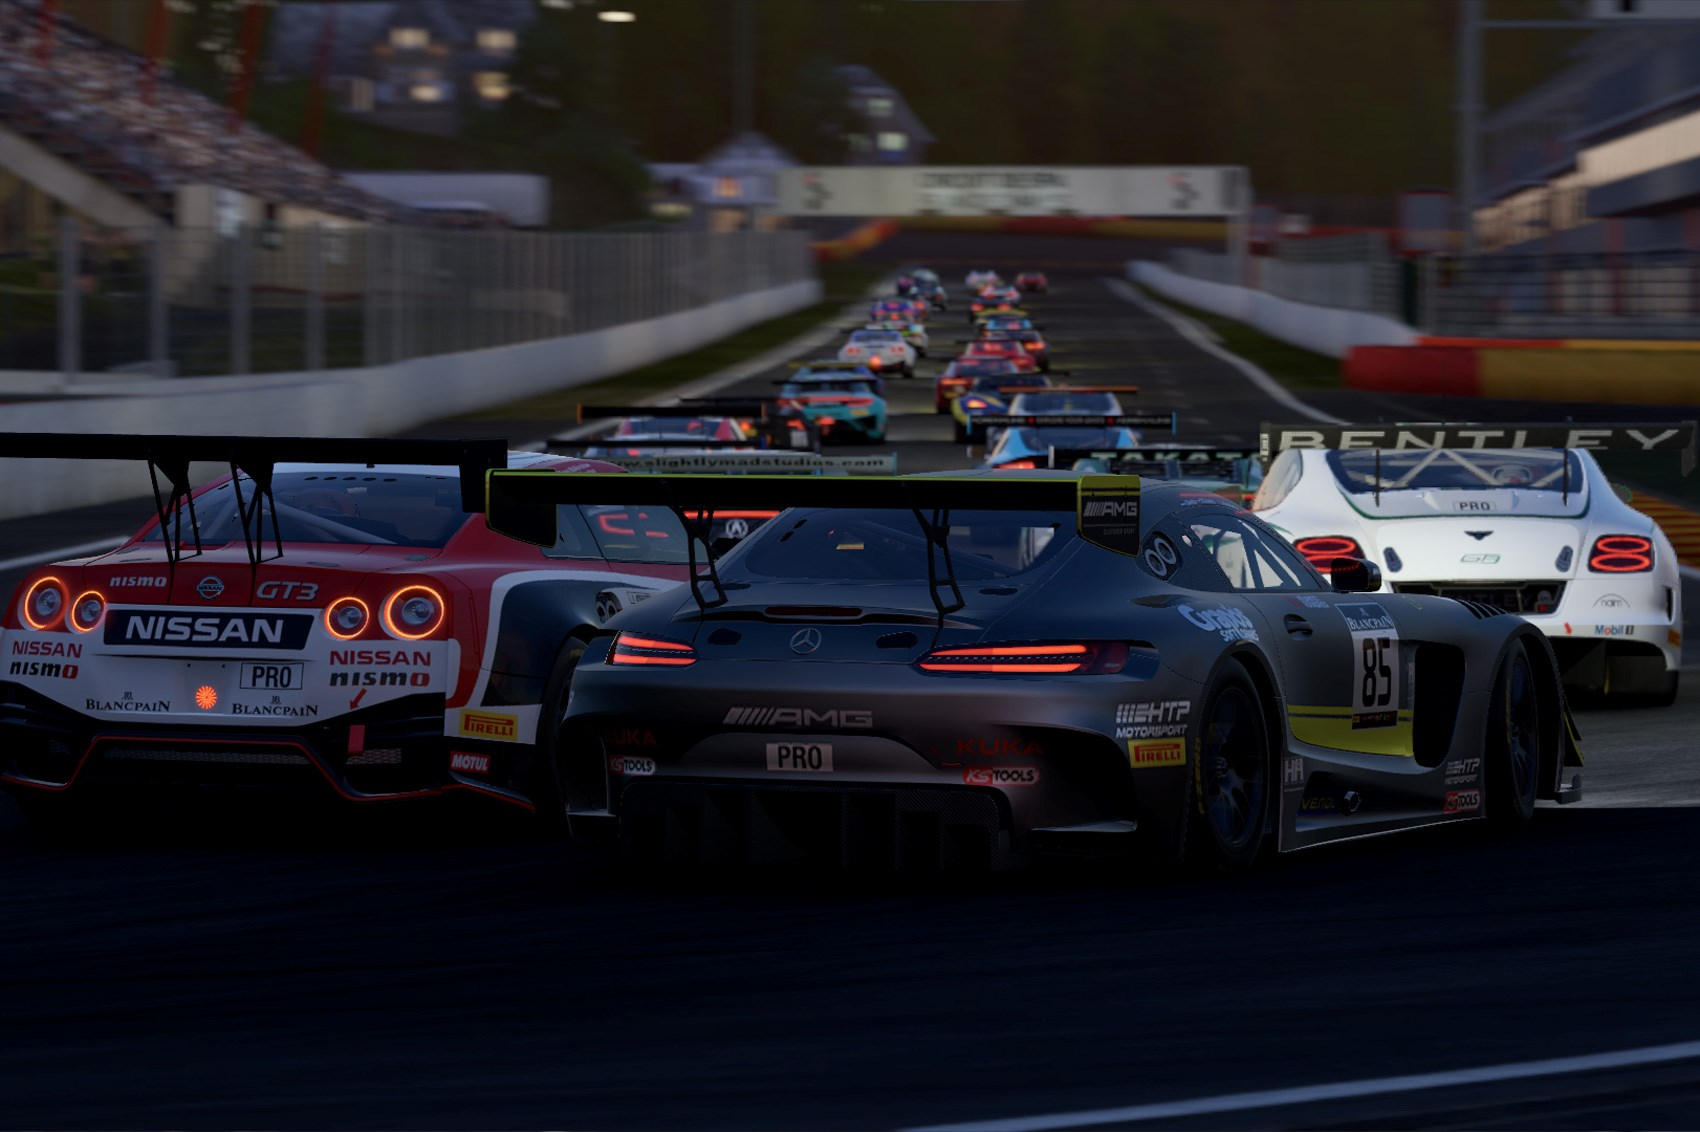 Project cars new mercedes amg gt3 previews virtualr sim racing - Advertisement